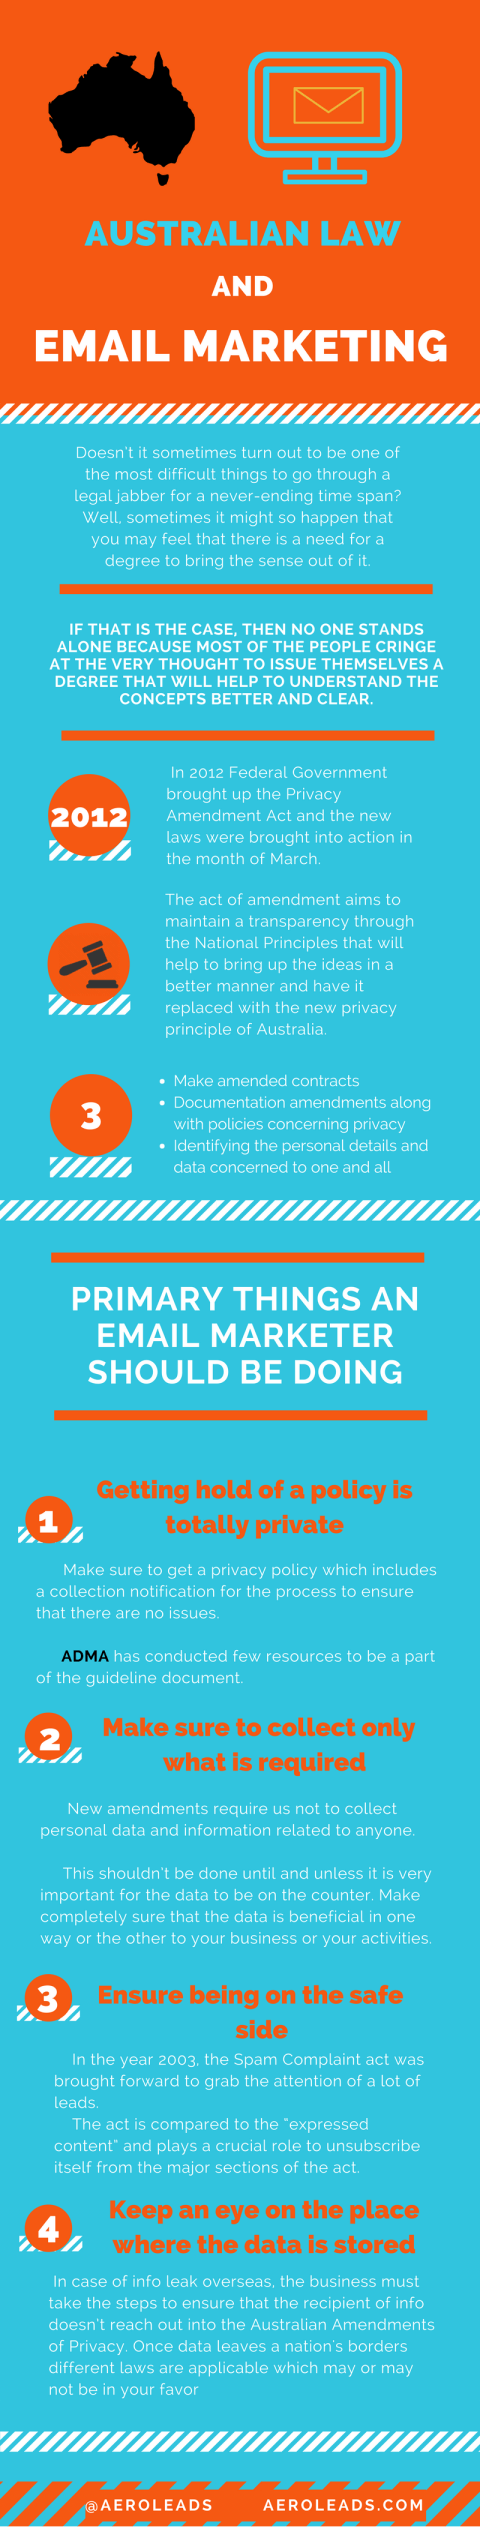 Australian Law of Email Marketing- Infographic by AeroLeads